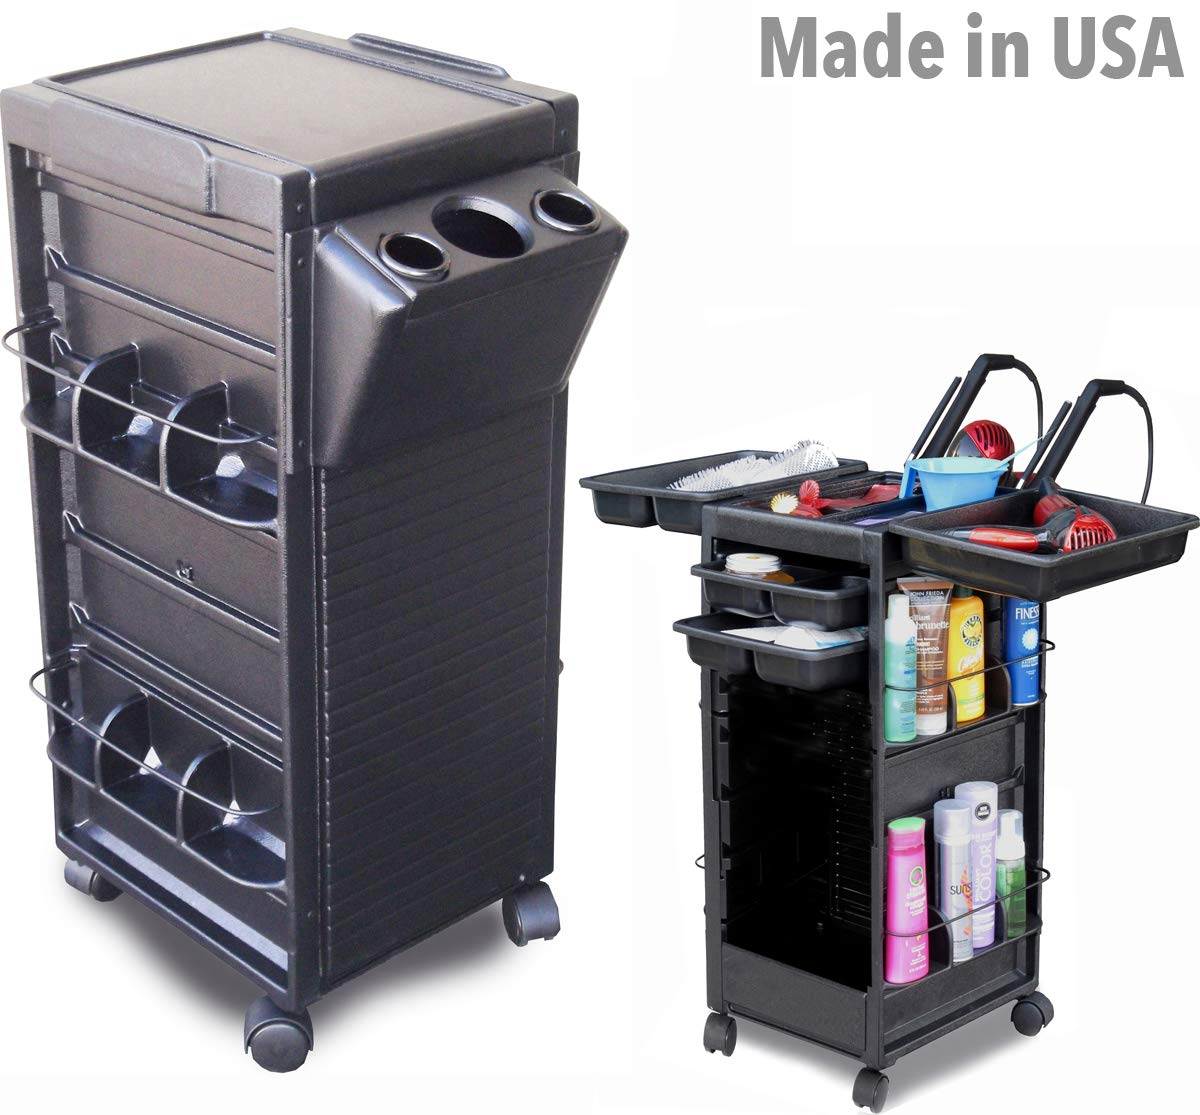 N20-H HF Salon Roll-About Utility Trolley Cart Non Lockable w/Tool Holder Made in USA by Dina Meri by Dina Meri